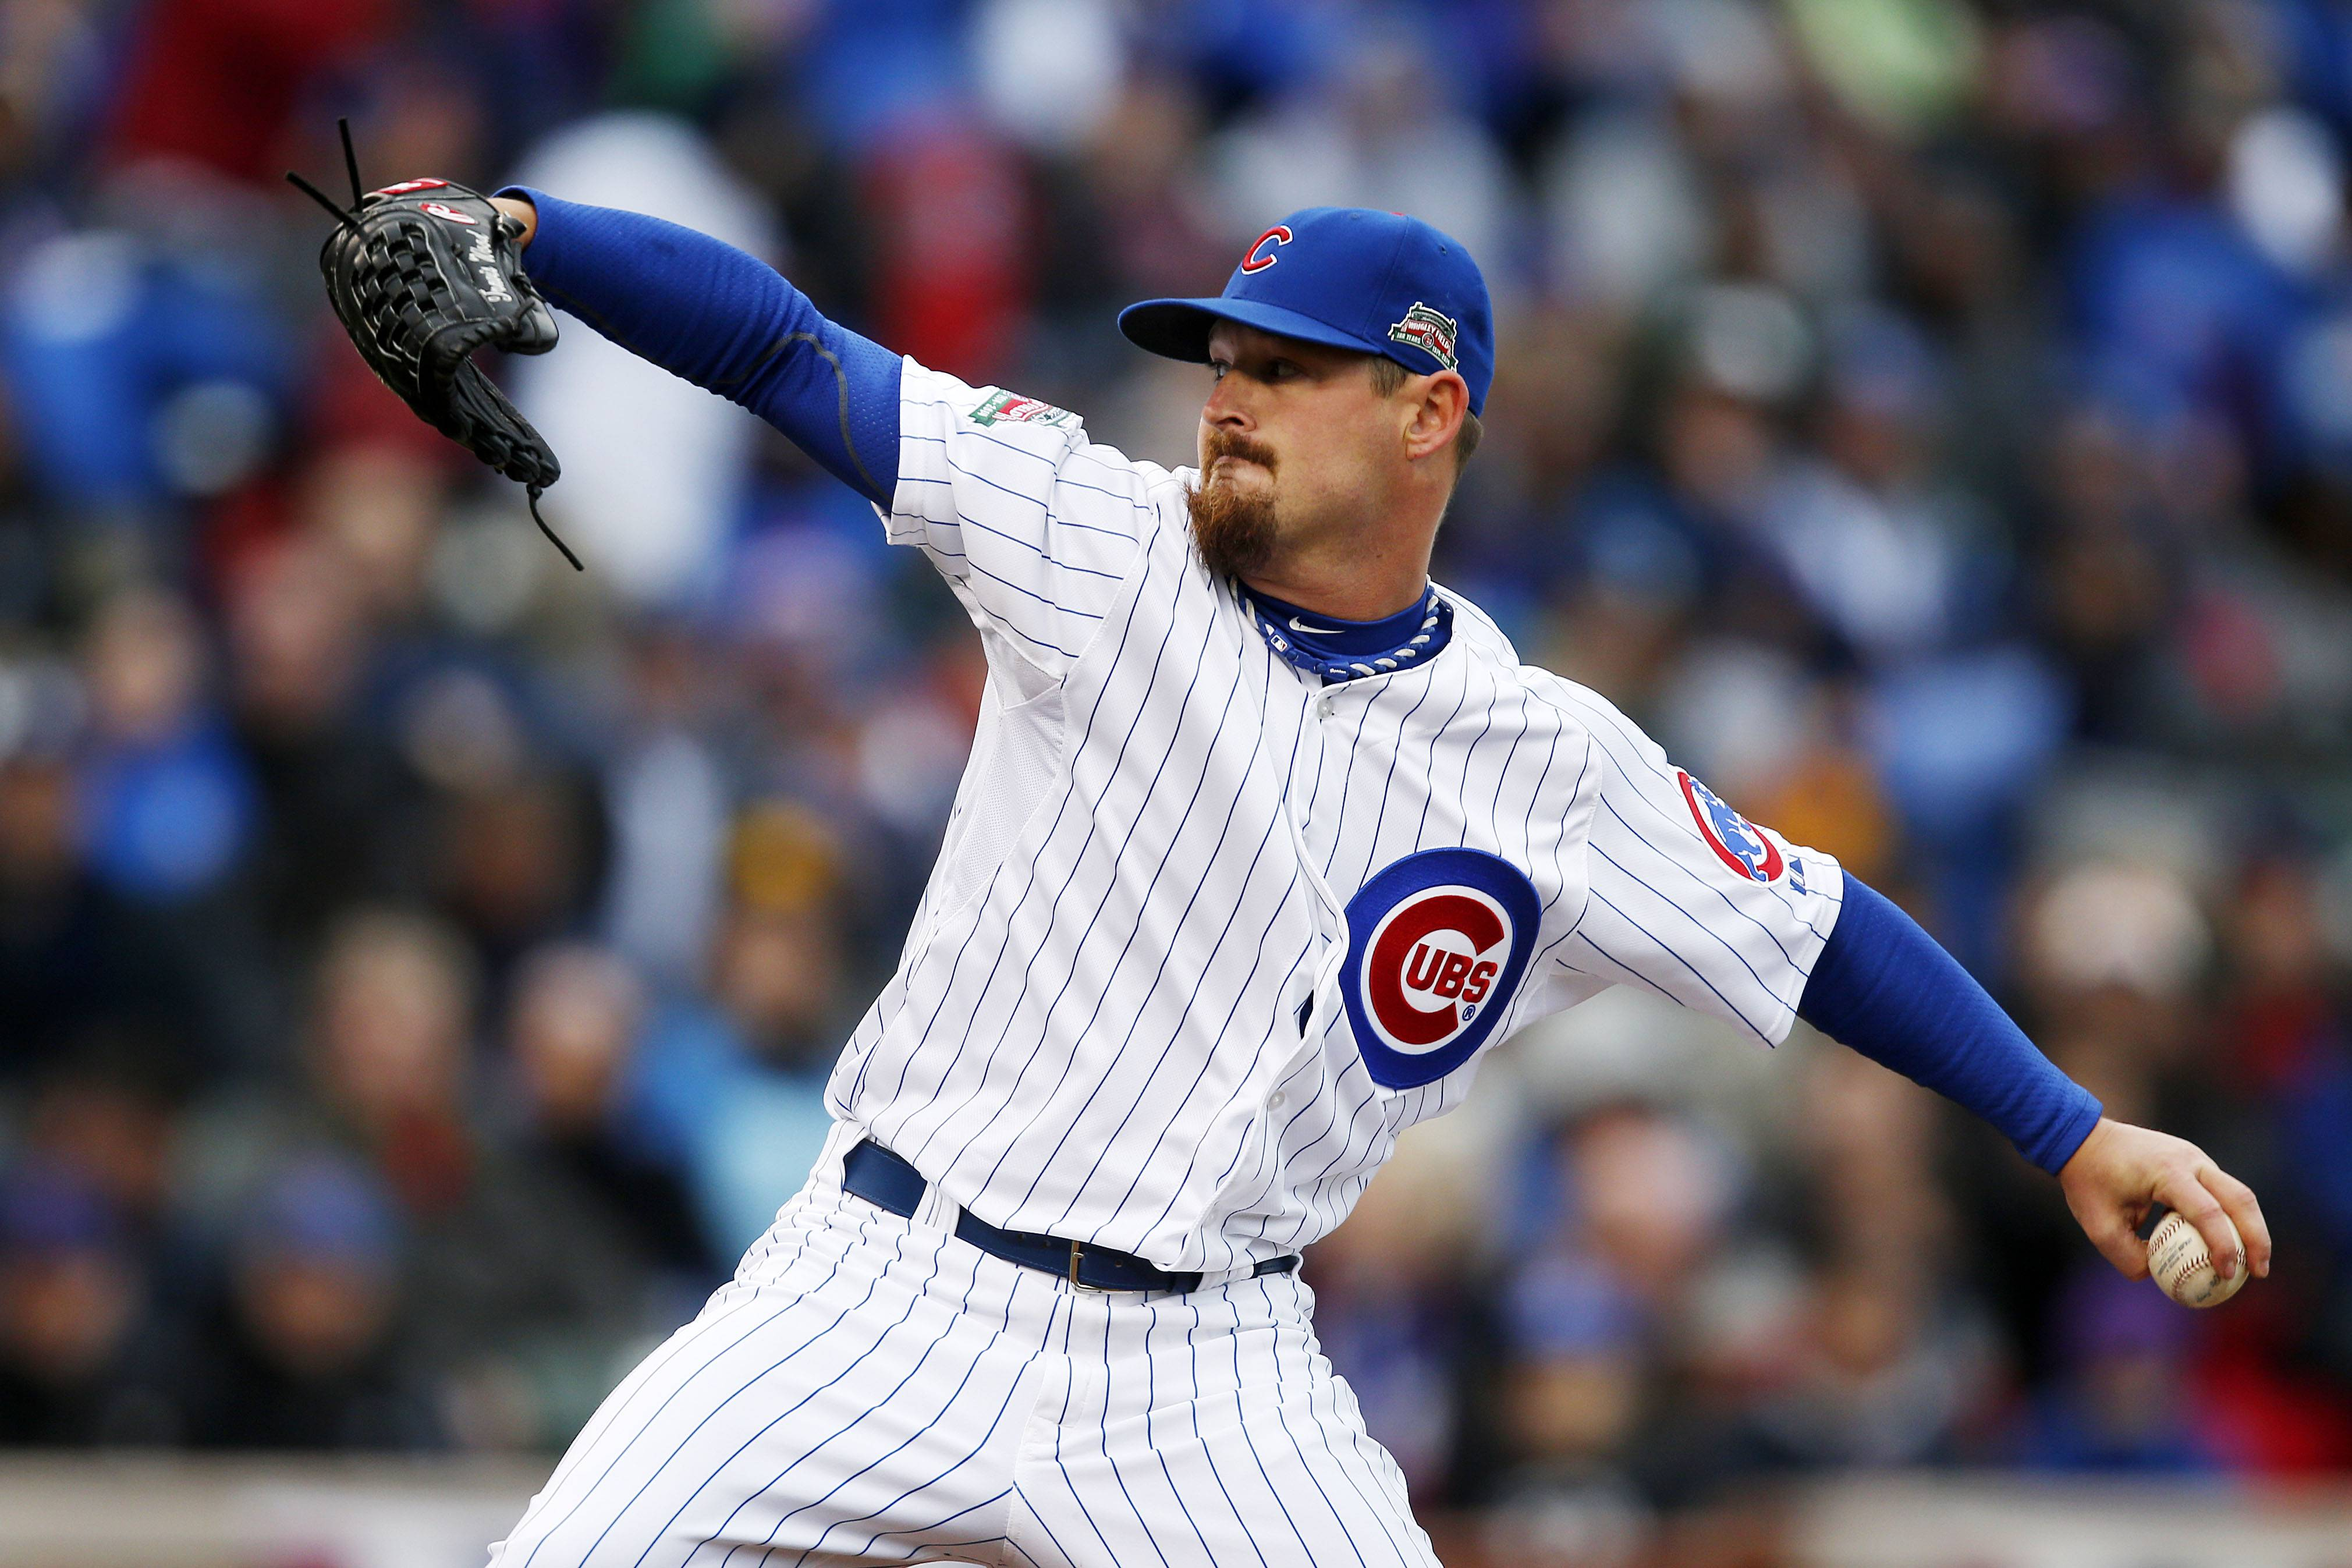 Chicago Cubs starting pitcher Travis Wood pitches against the Philadelphia Phillies during the first inning of the team's home opener Friday.